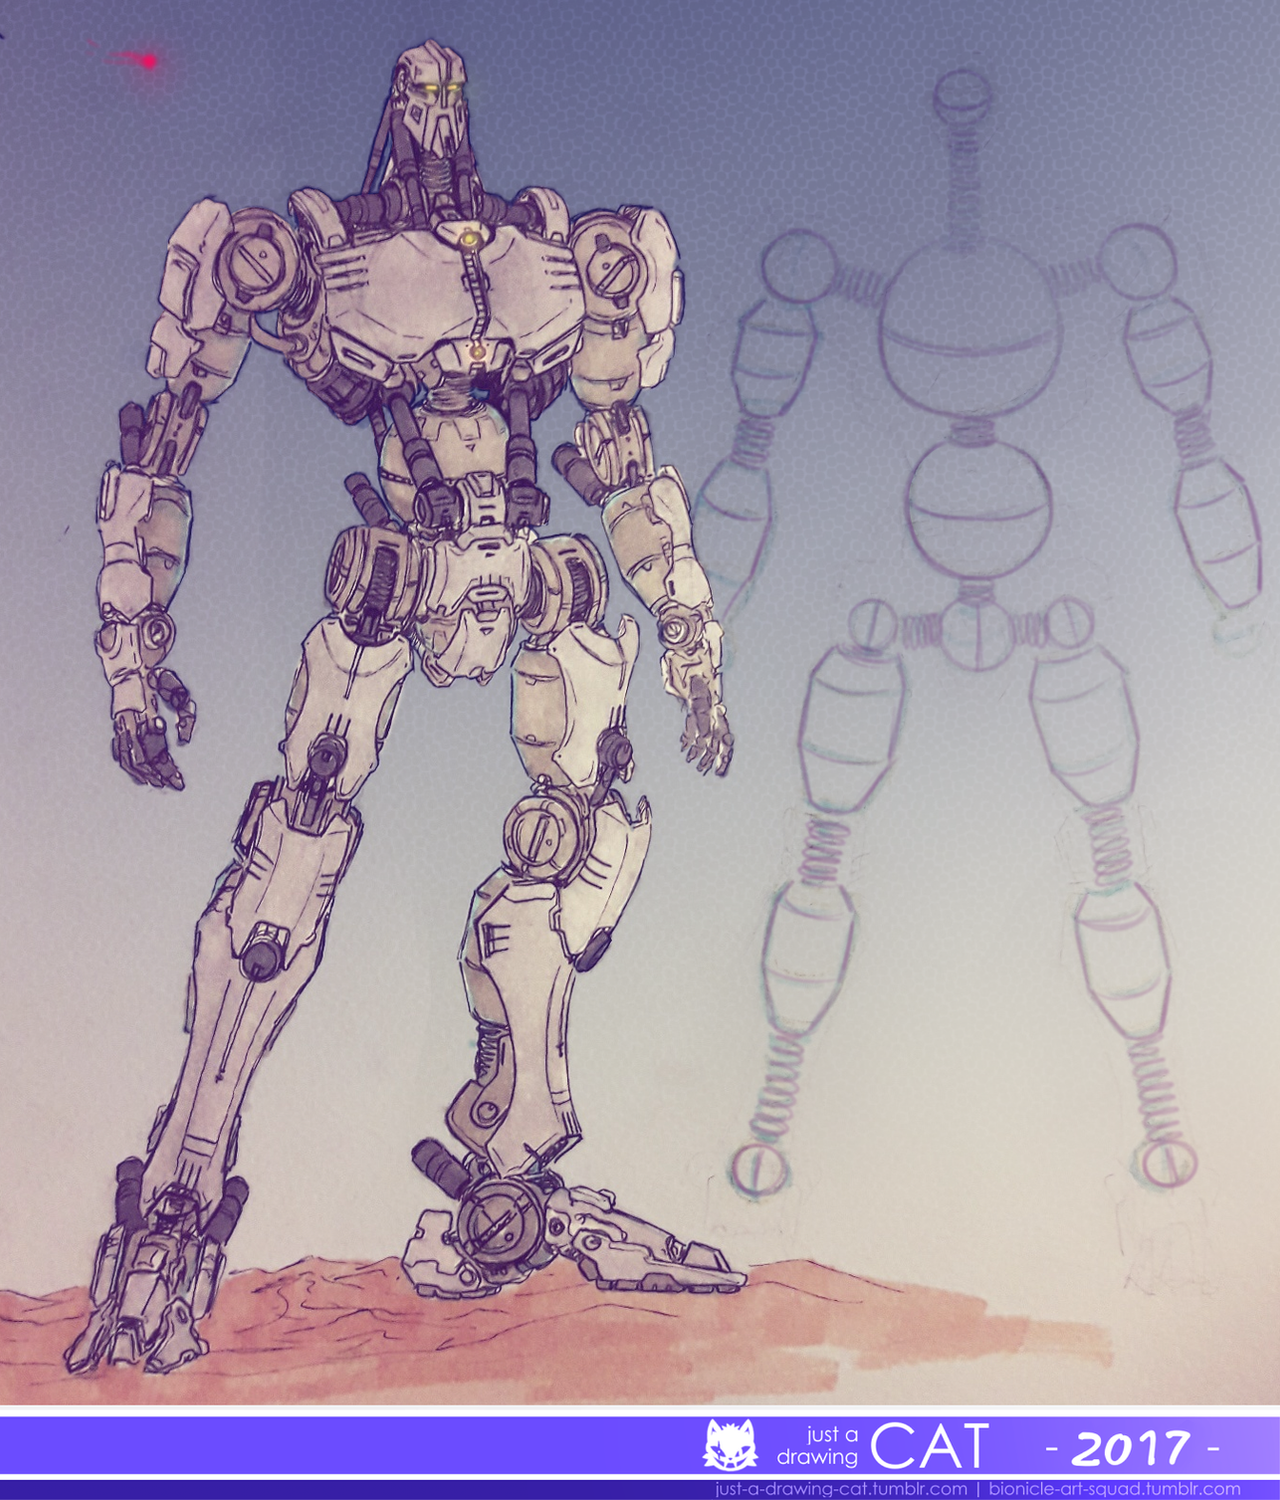 [Fan-Arts] Images du net - Page 21 The_great_spirit_robot_by_just_a_drawing_cat-dawhcwo